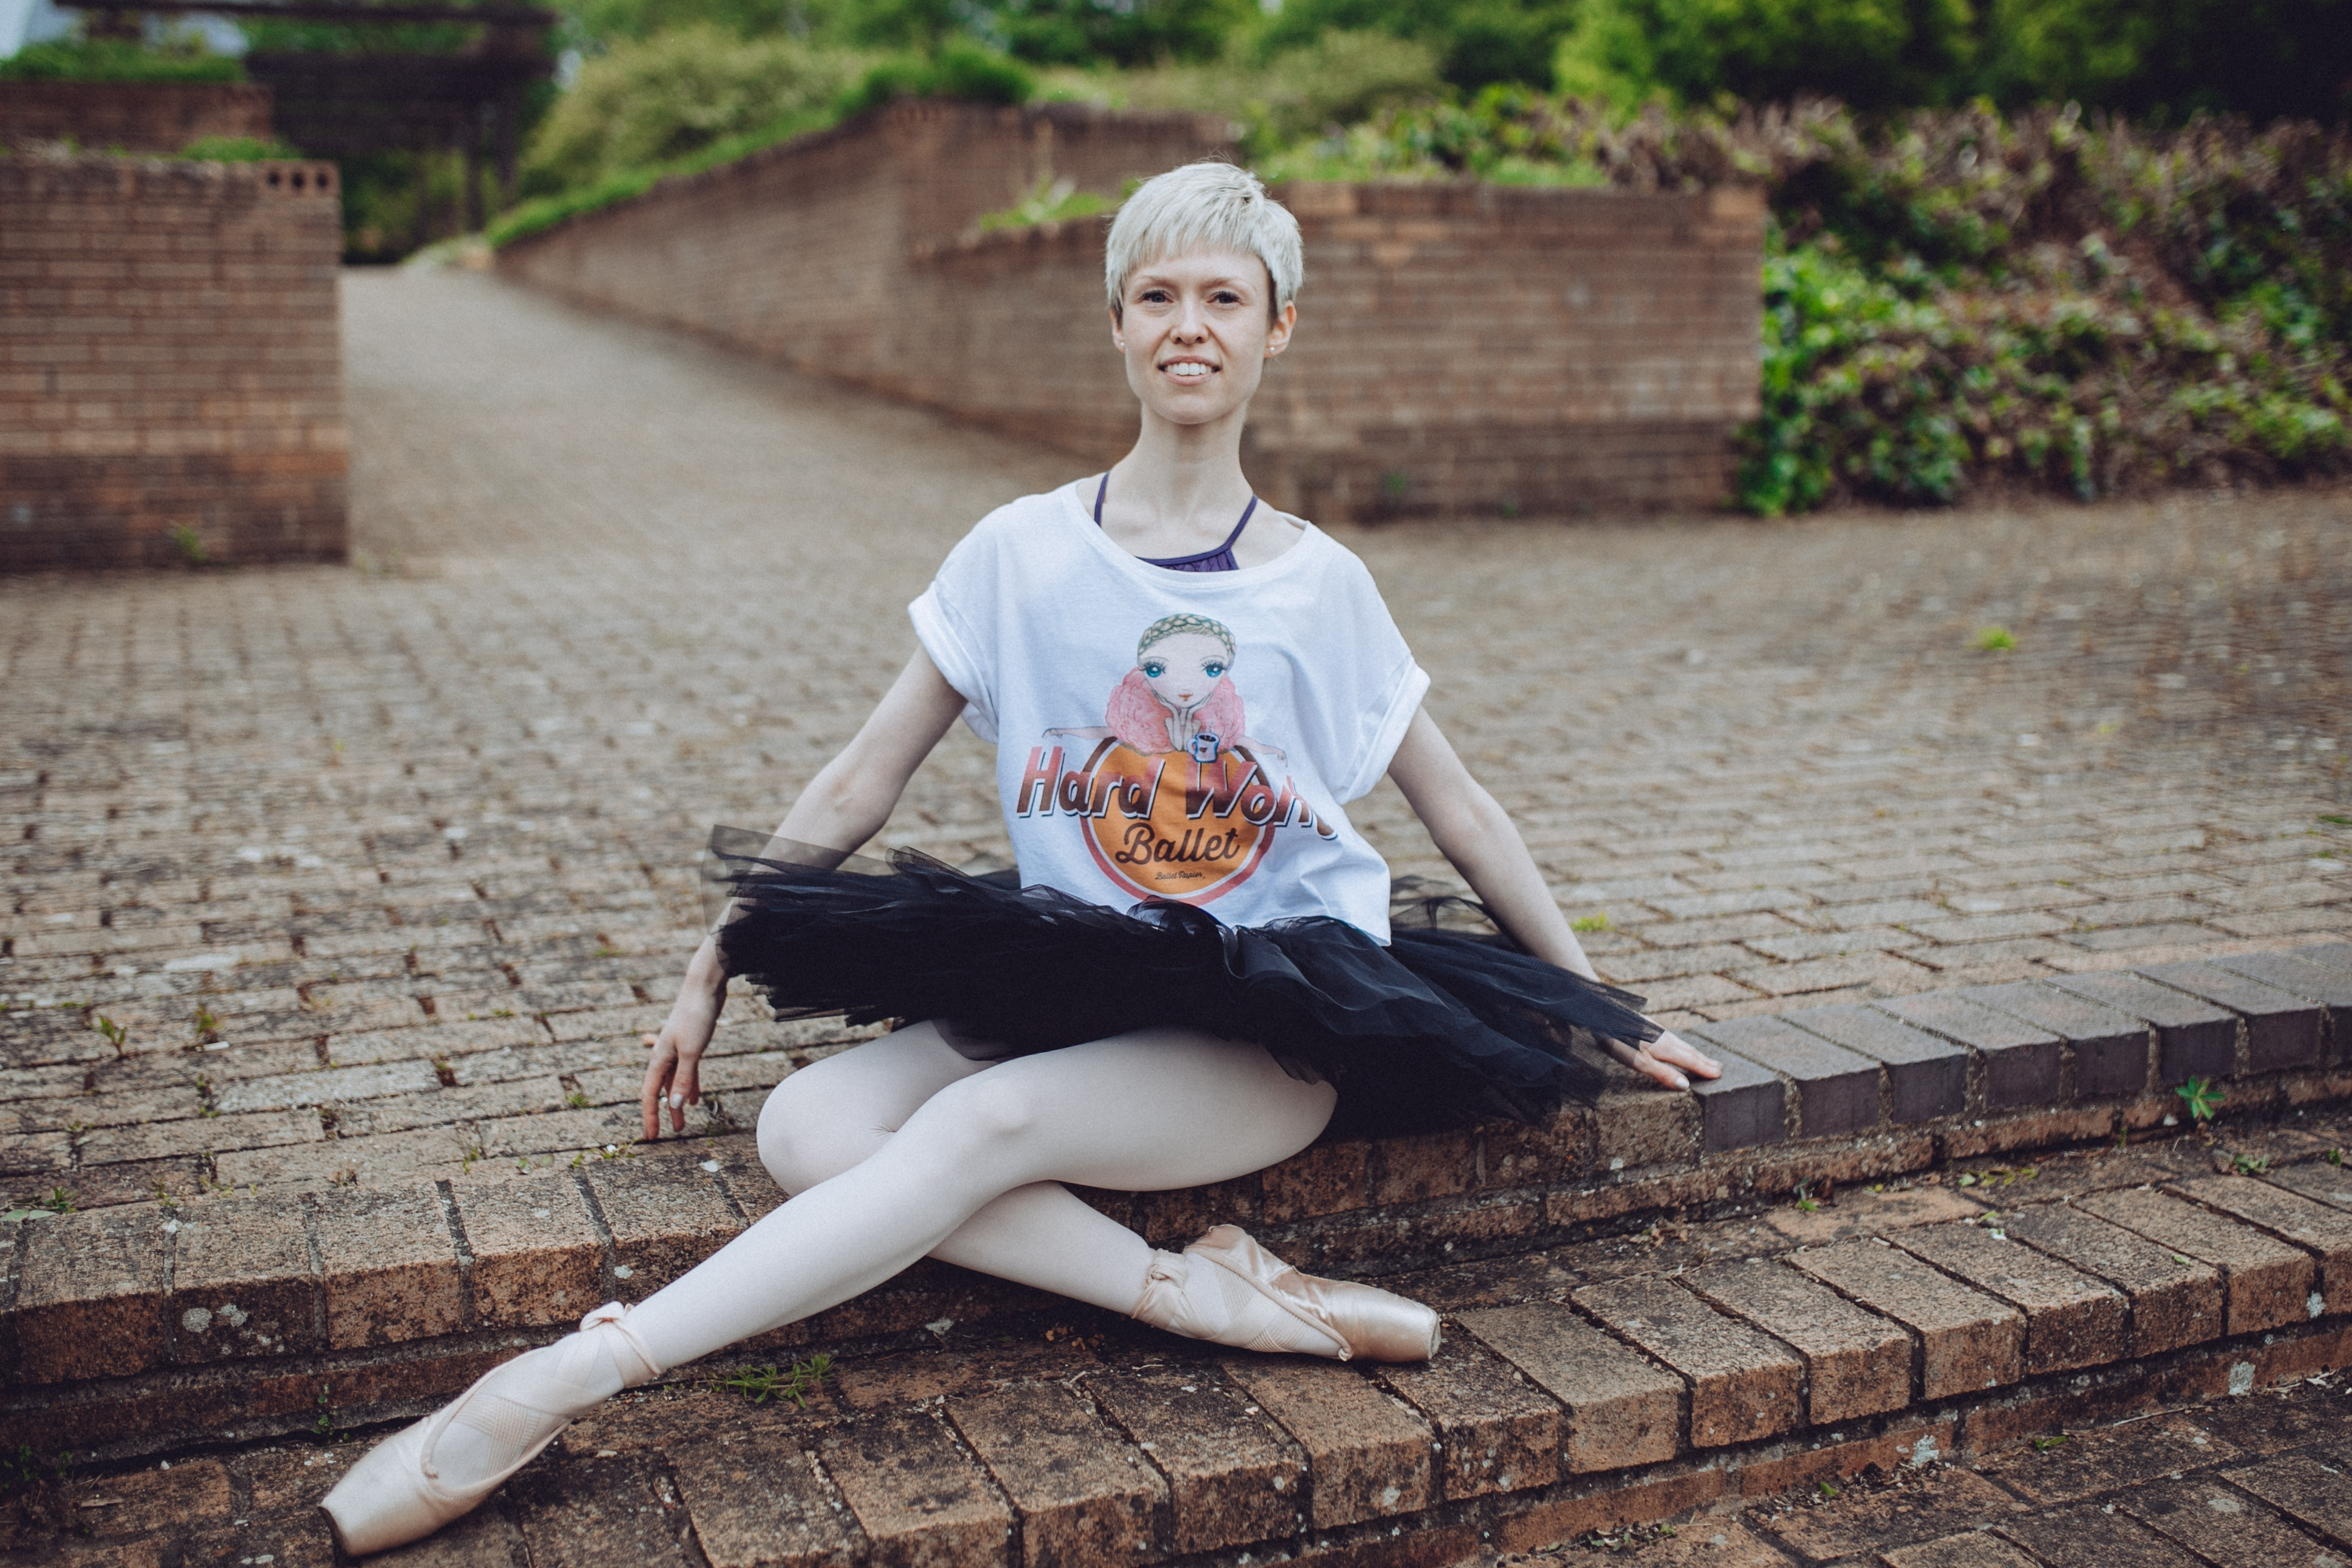 Georgina Butler wearing the 'Hard Work Ballet' T-shirt by Ballet Papier. Georgina is wearing the T-shirt over a purple leotard and with a black tutu and pointe shoes.